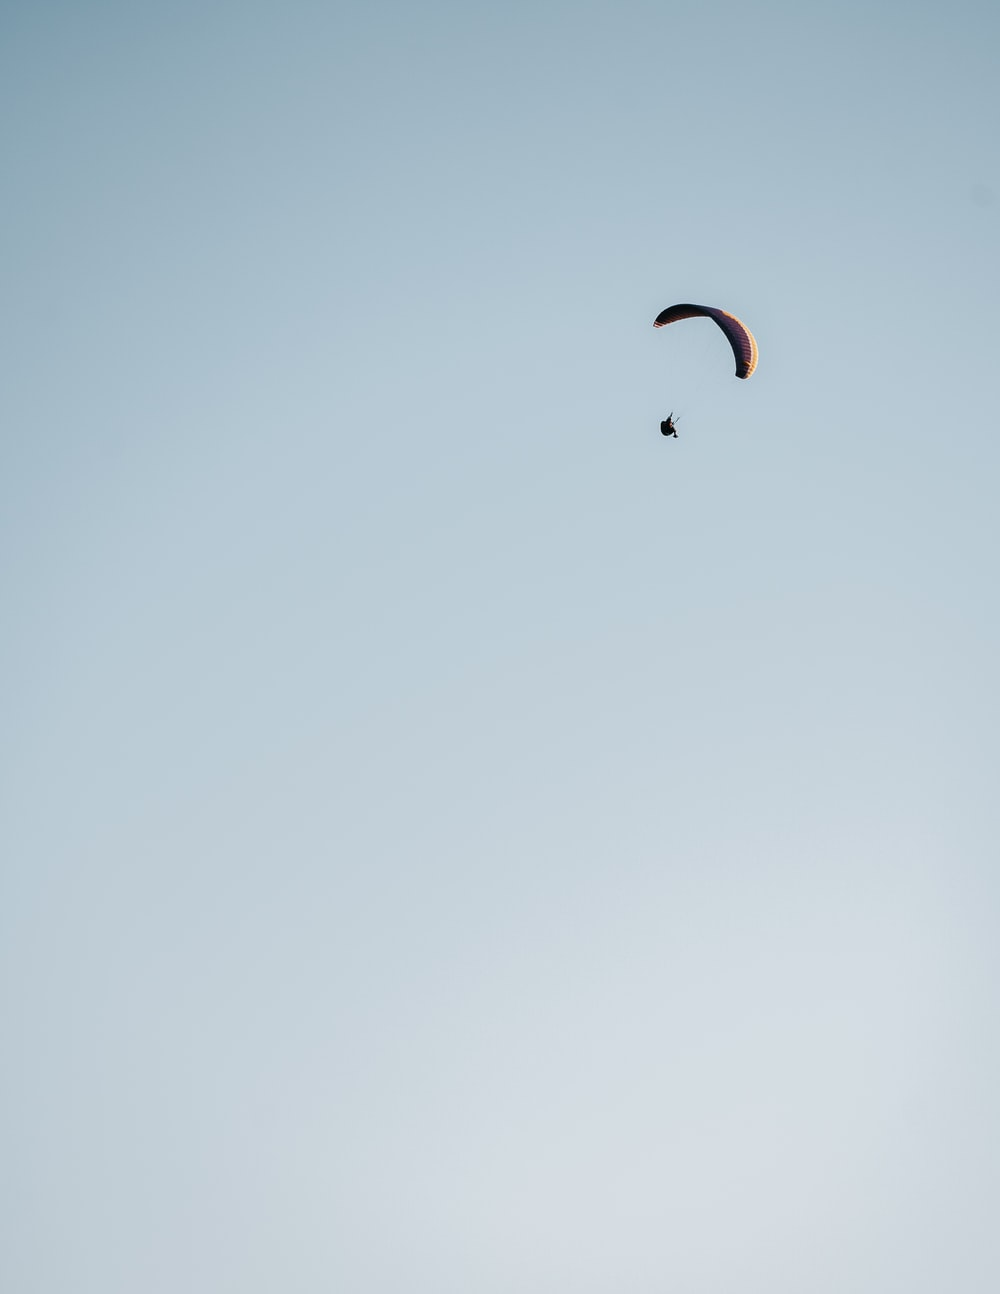 person in white shirt and black pants with white parachute in the sky